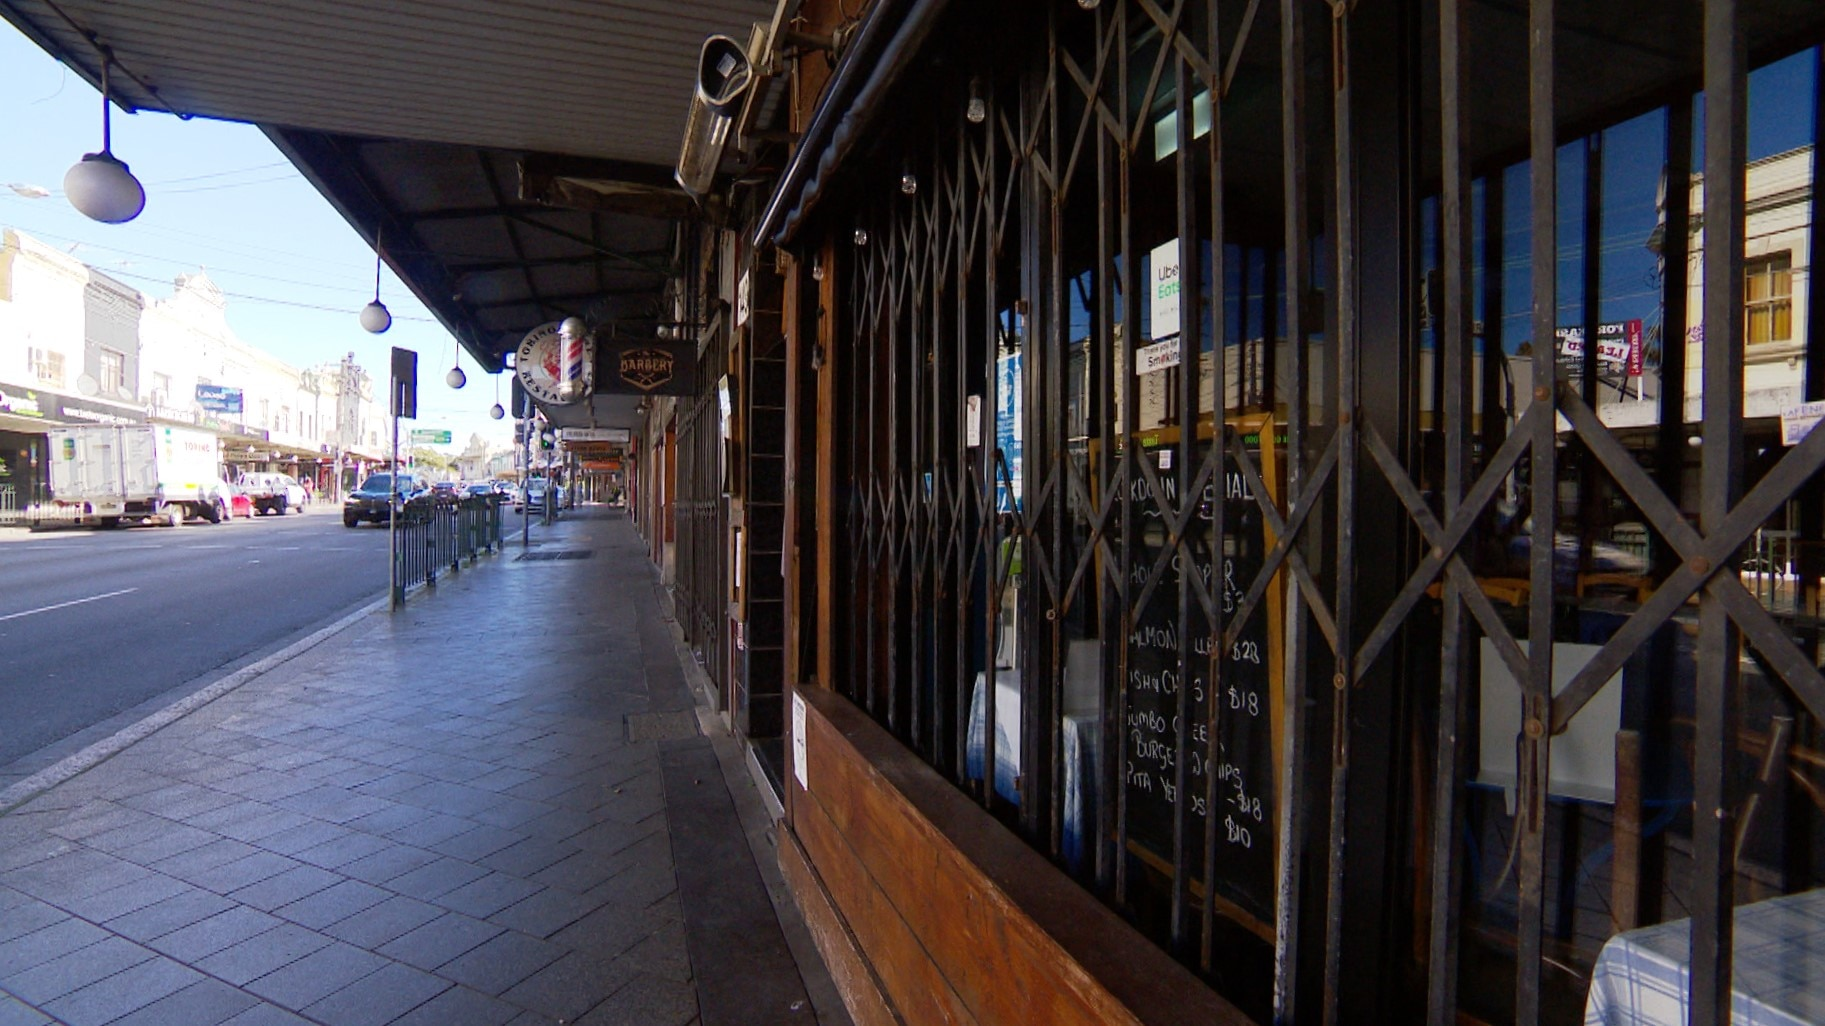 The usually busy streets of Enmore Road are quiet during lockdown.